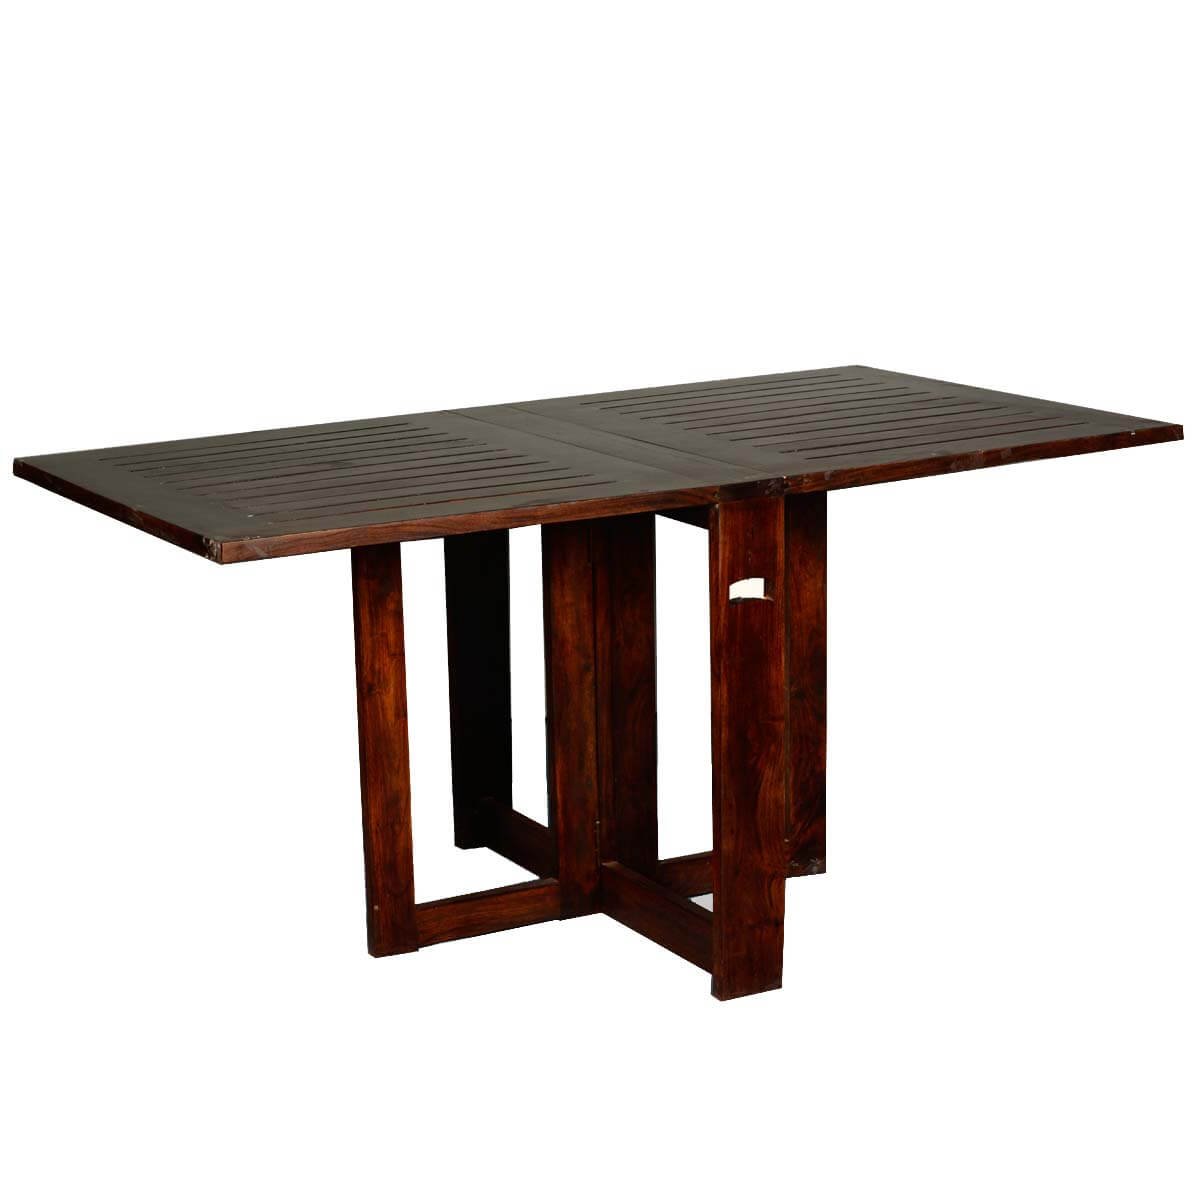 Incredible solid wood 4 square pedestal folding dining for Dinner table wood